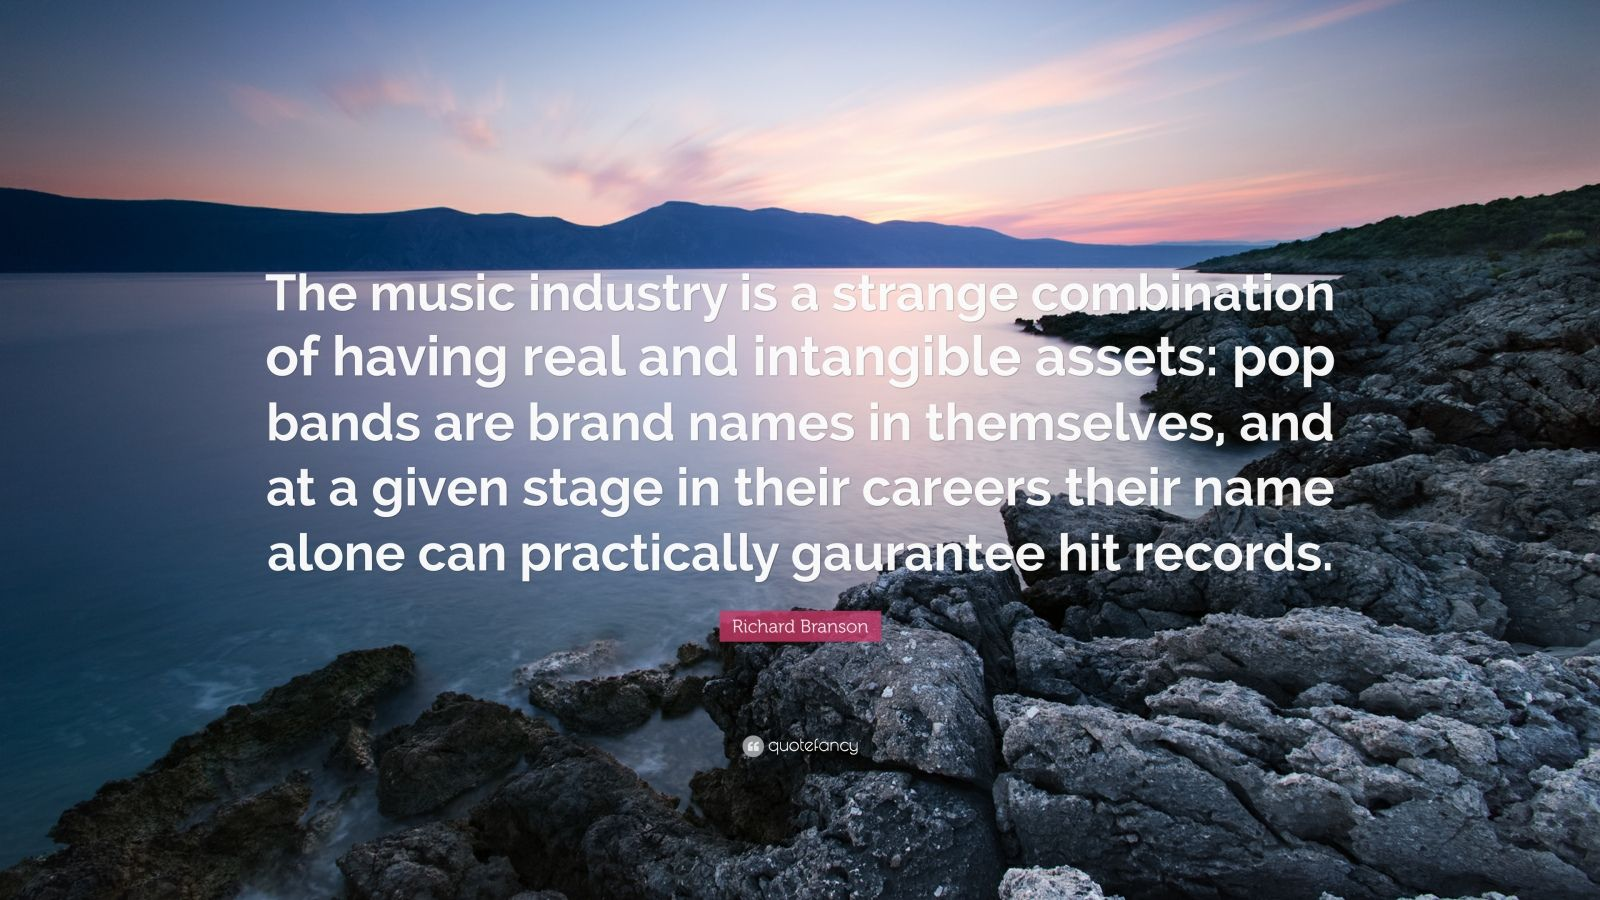 "Richard Branson Quote: ""The music industry is a strange combination of having real and intangible assets: pop bands are brand names in themselves, and at a given stage in their careers their name alone can practically gaurantee hit records."""